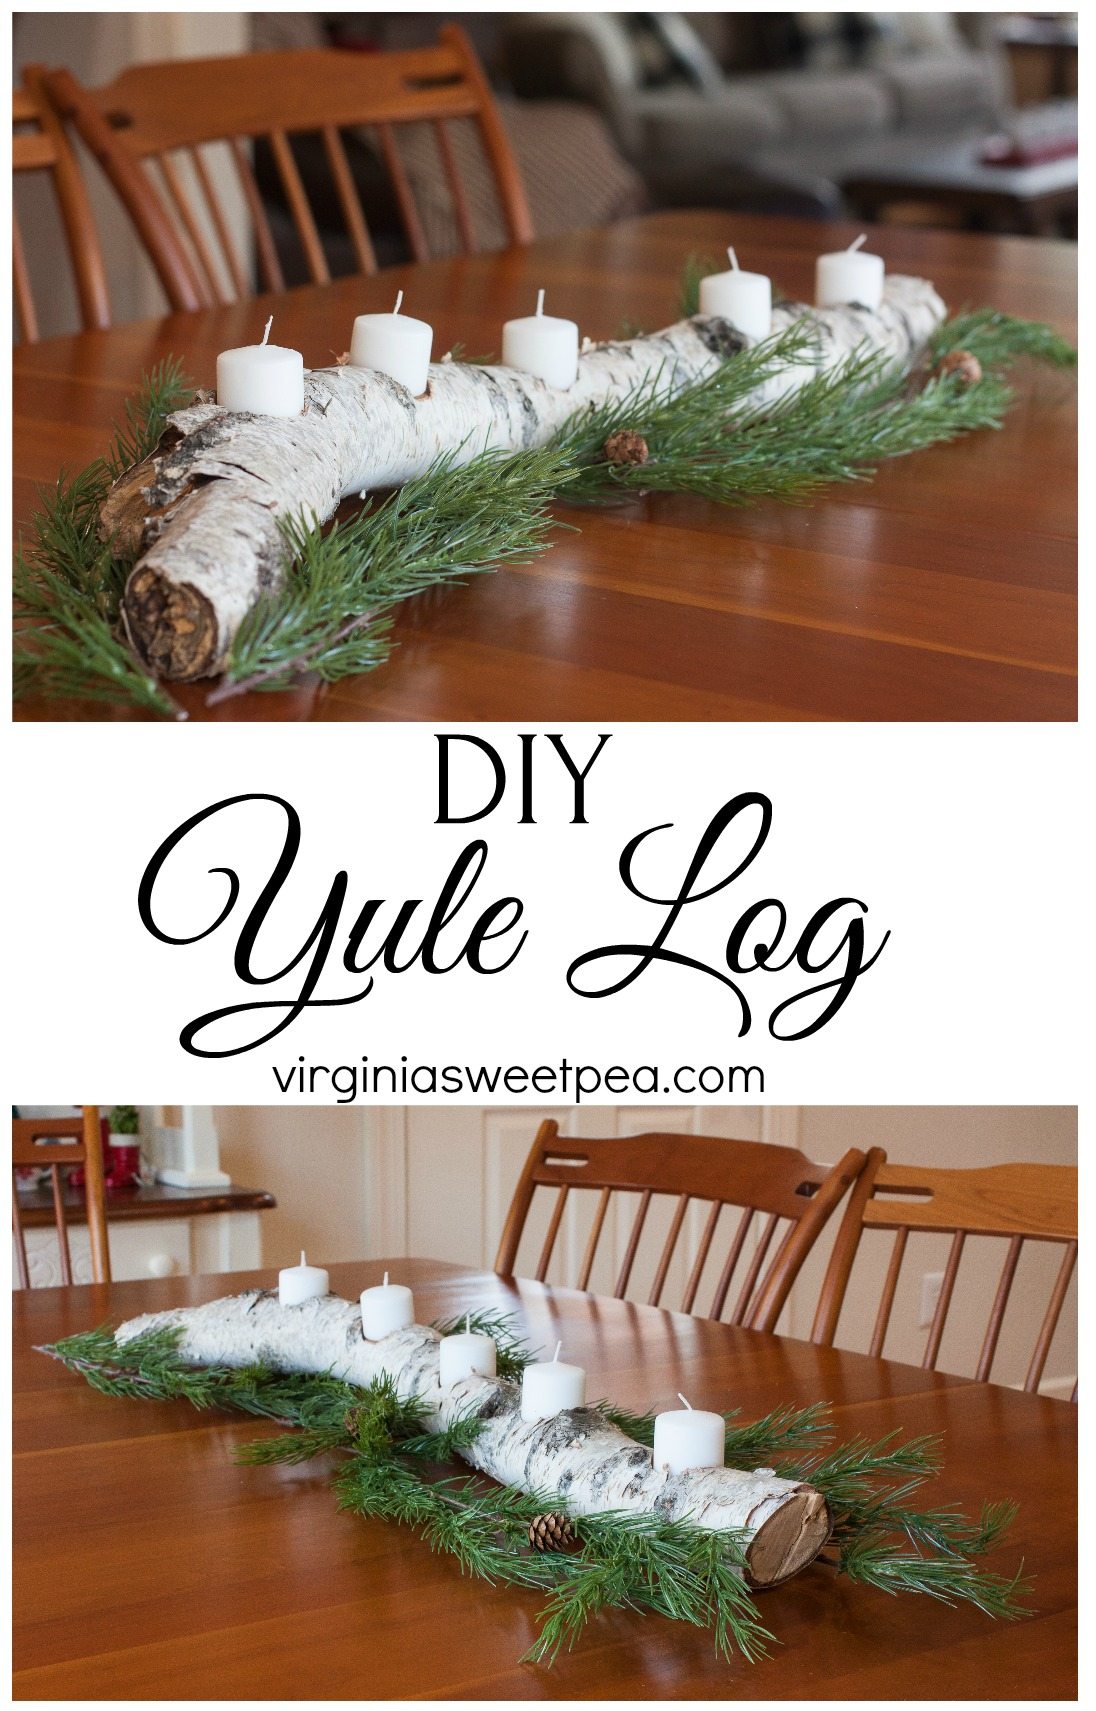 DIY Yule Log - Learn how to make a yule log to use for winter decor in your home by following this step-by-step tutorial. #diy #woodworking #diyproject #yulelog